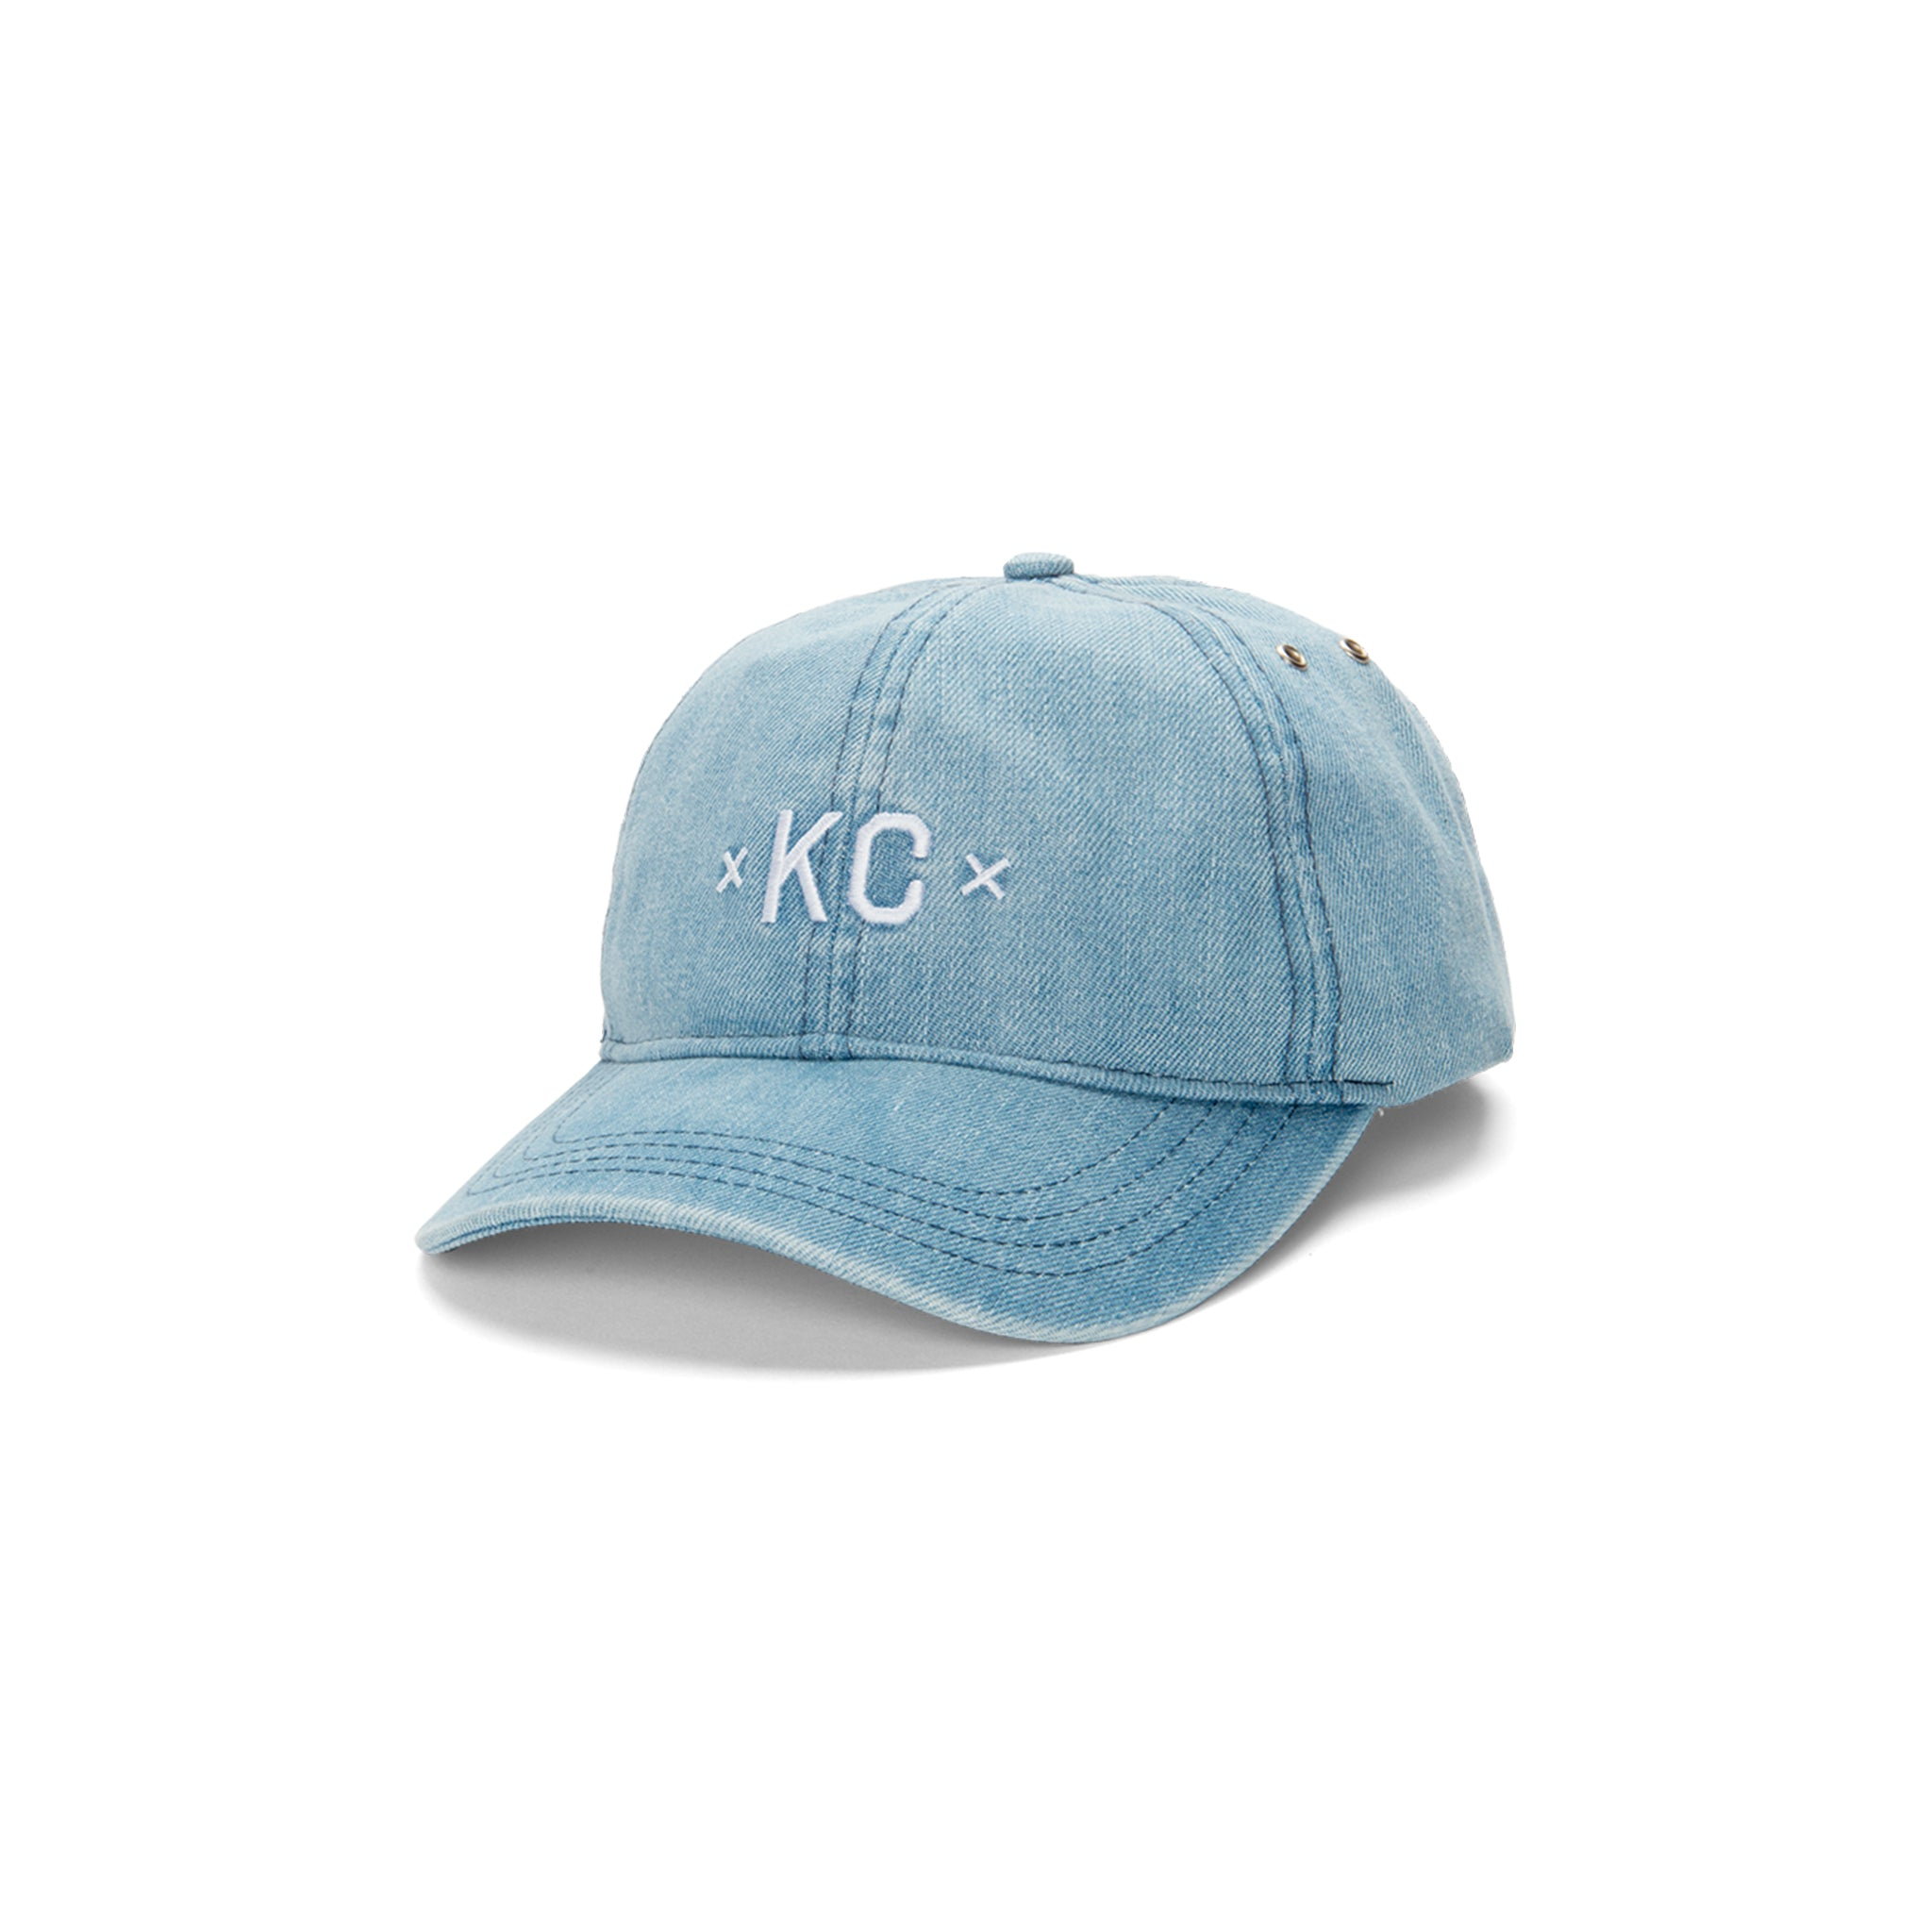 Signature KC Dad Hat - Denim